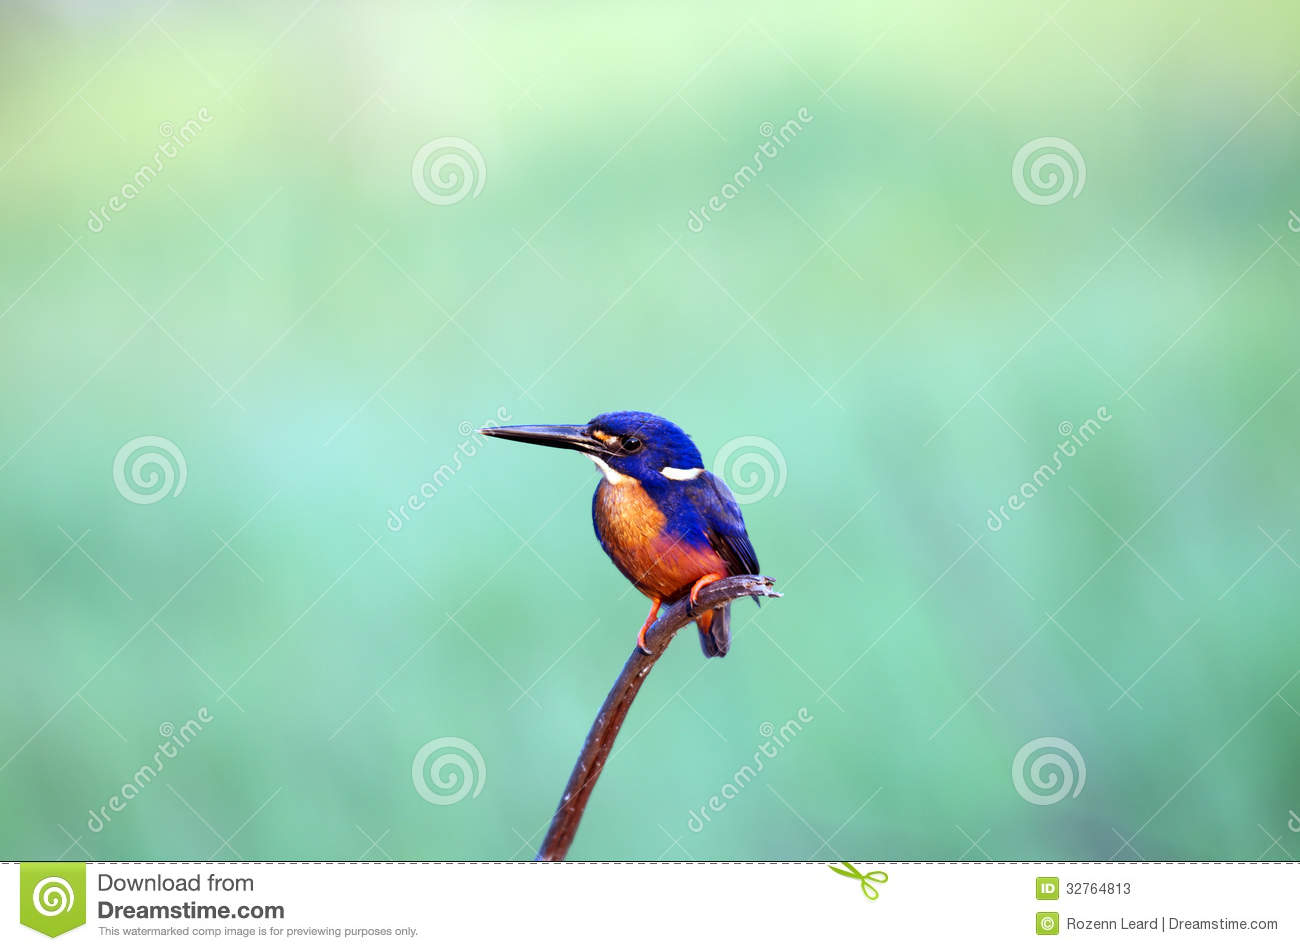 Azure Kingfisher clipart #19, Download drawings